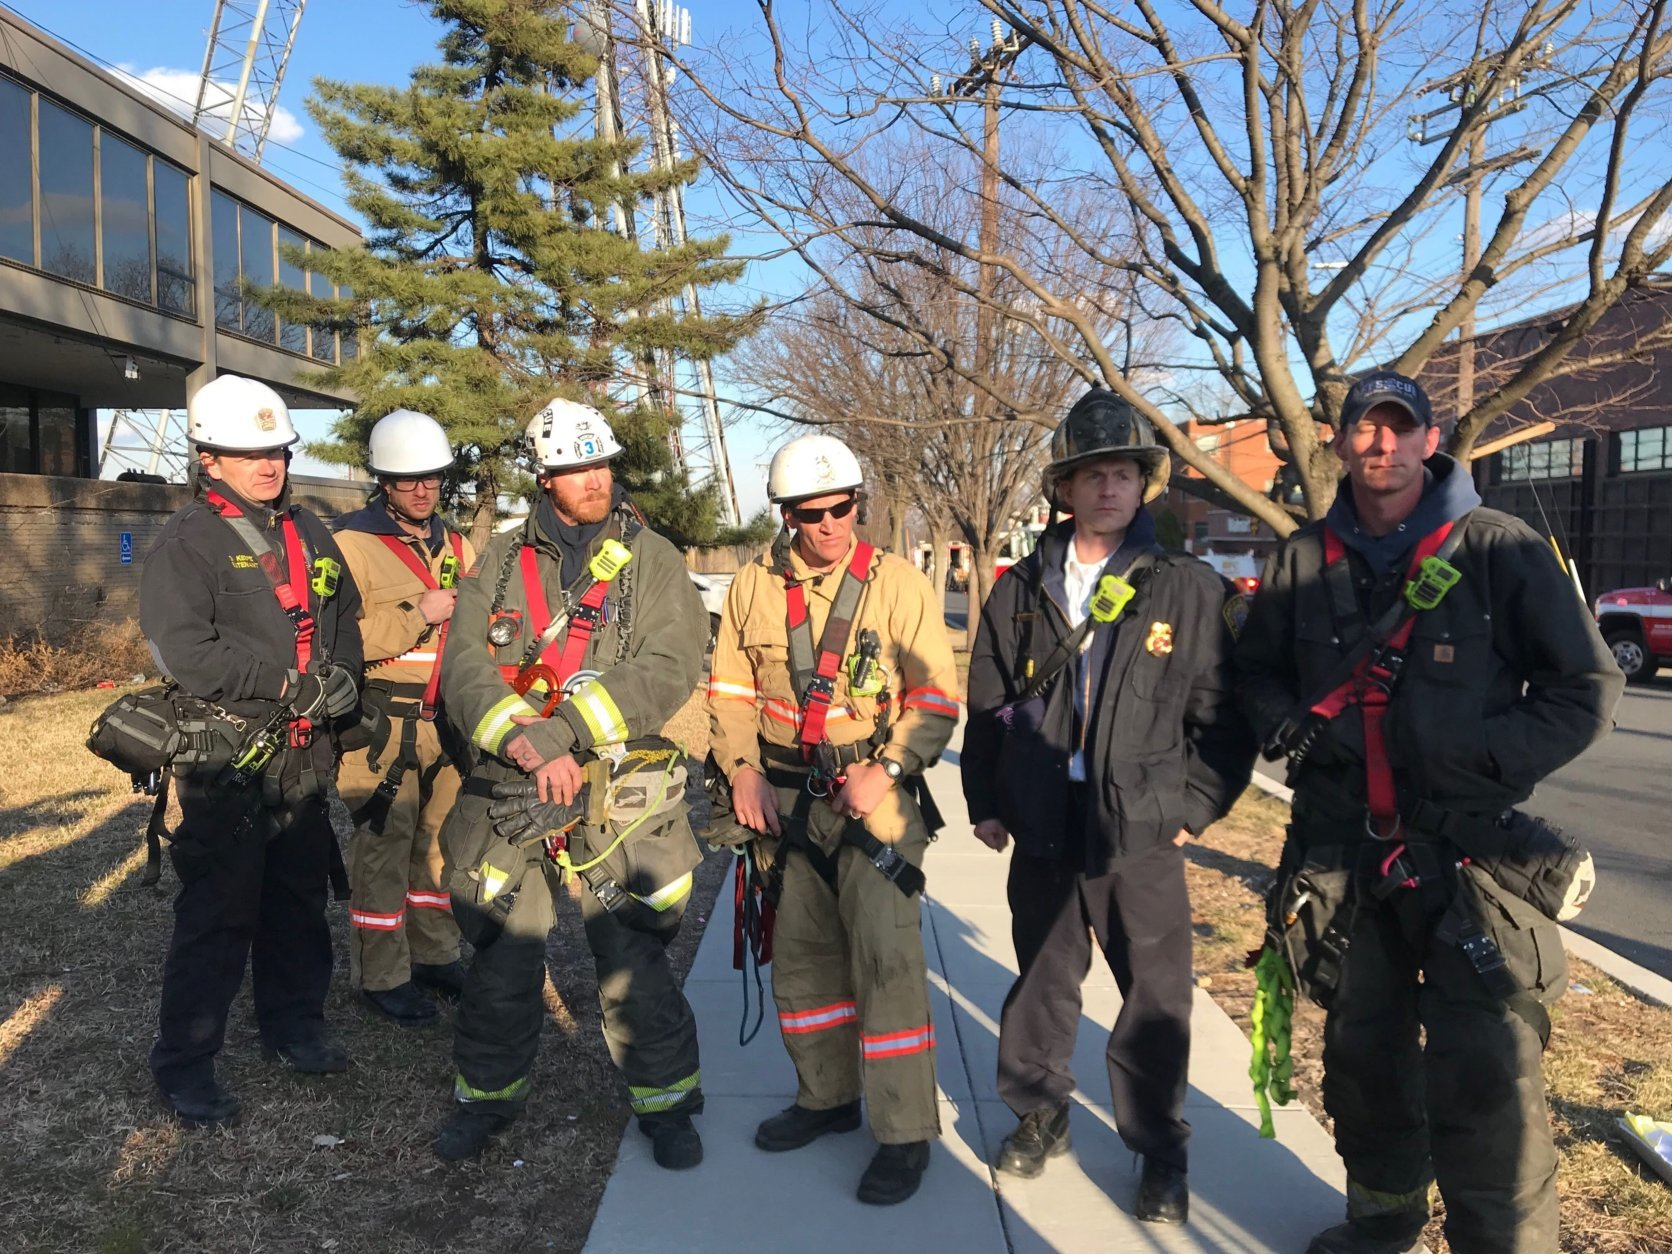 DC Firefighter rescue team that planned and executed the rescue of the stranded tower worker. (WTOP/Dick Uliano)